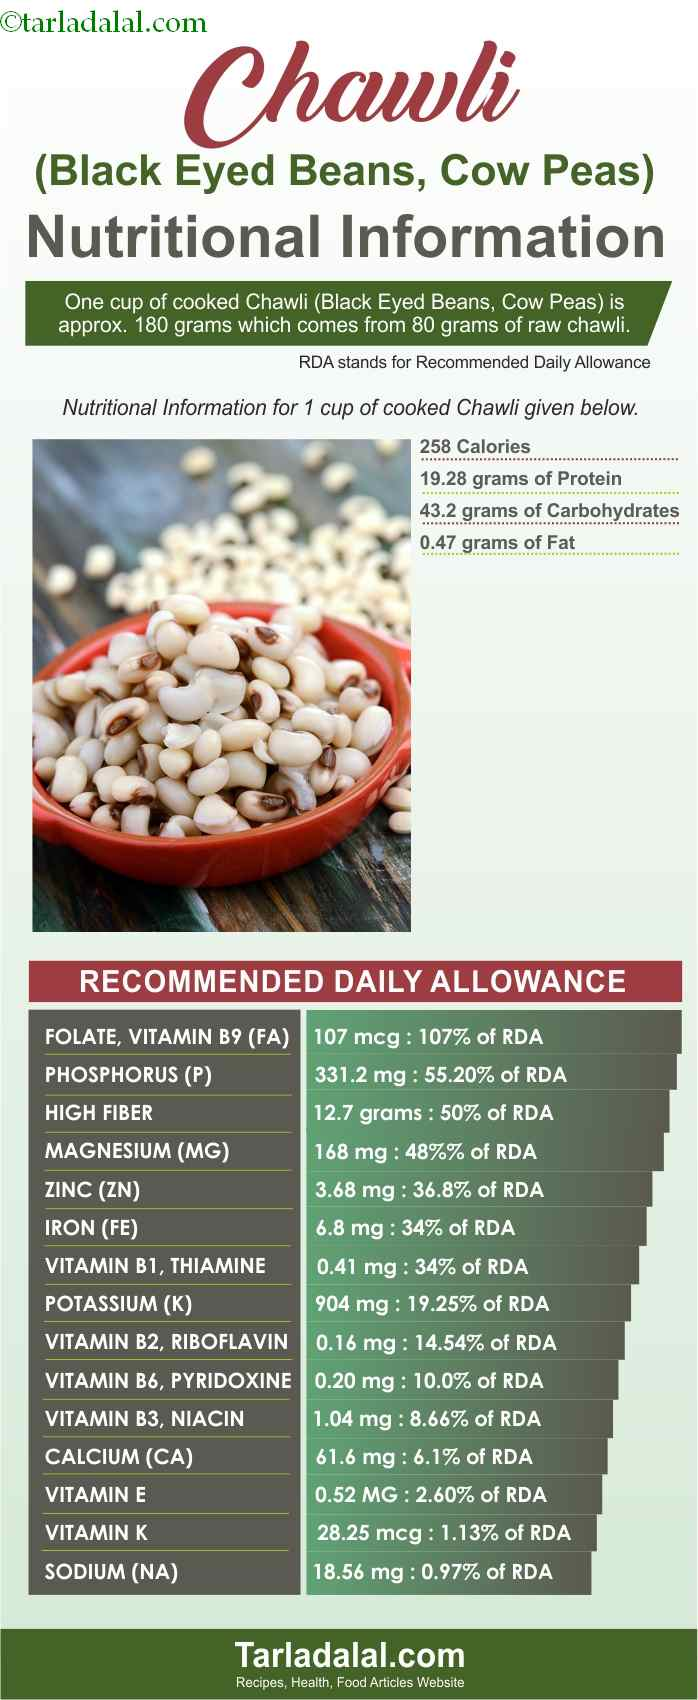 Nutritional-Information-of-Chawli-(Black-Eyed-Beans,-Cow-Peas)